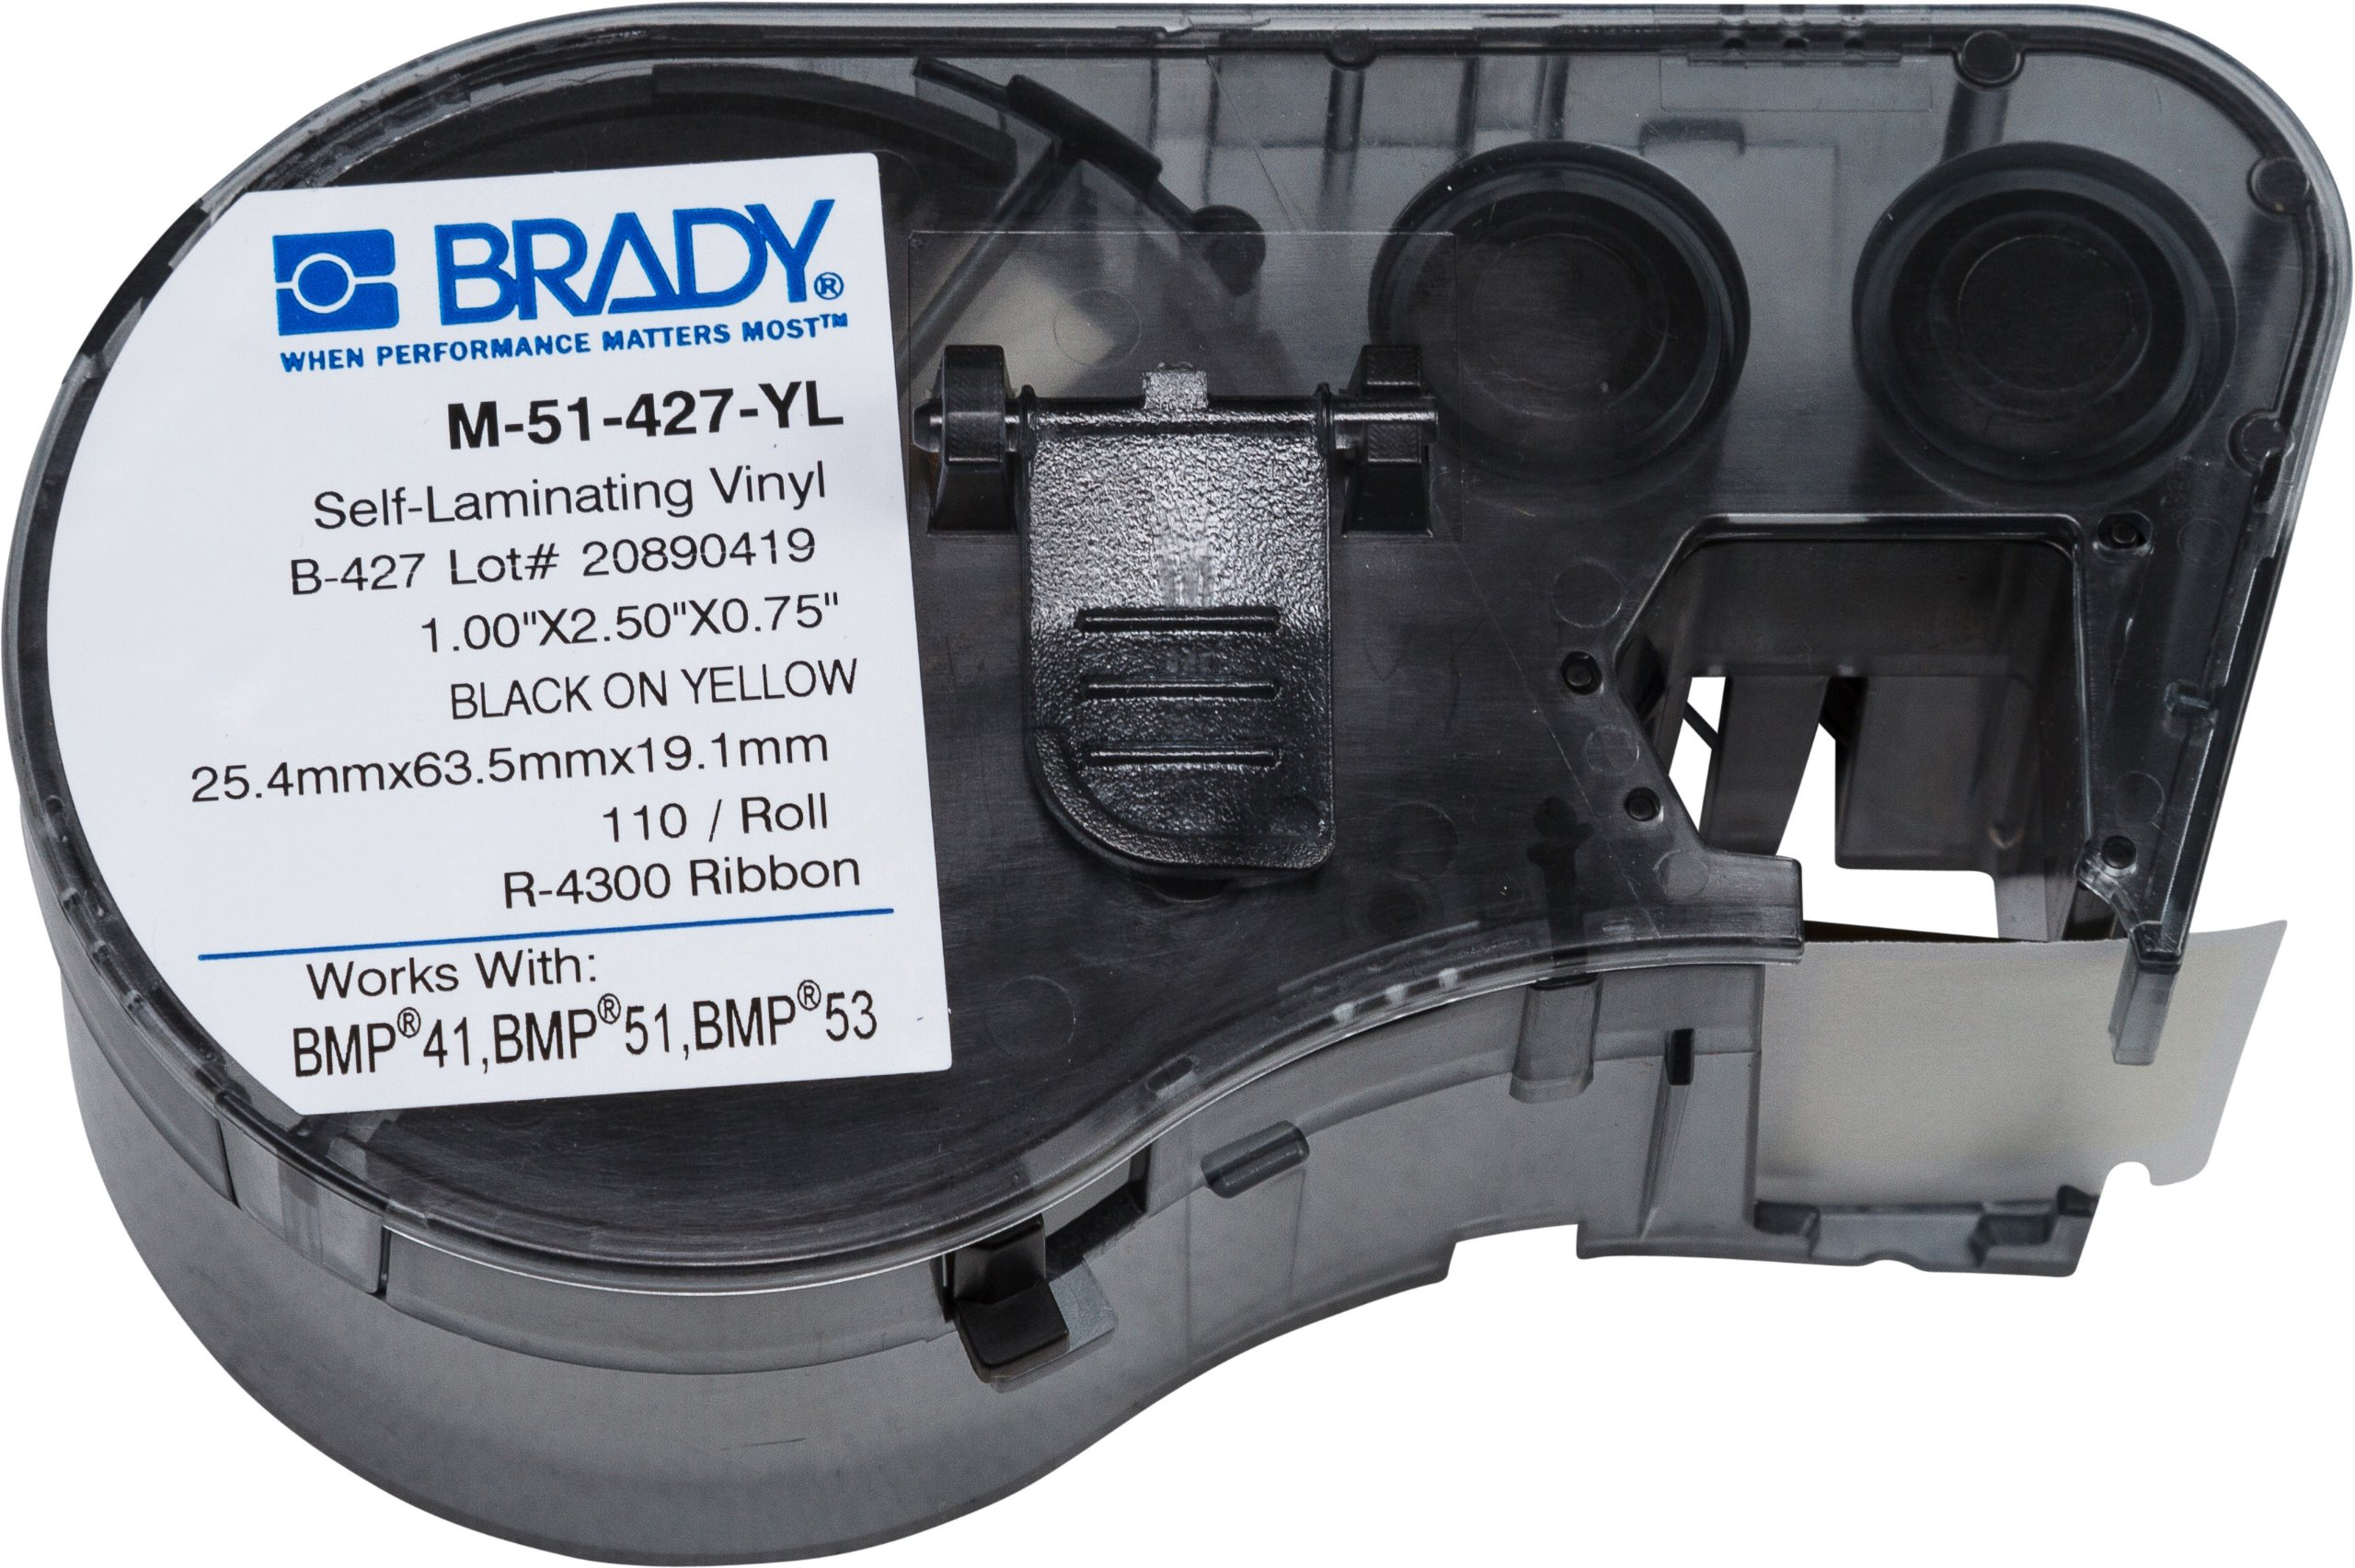 Brady M-51-427-YL Labels for BMP53/BMP51 Printers